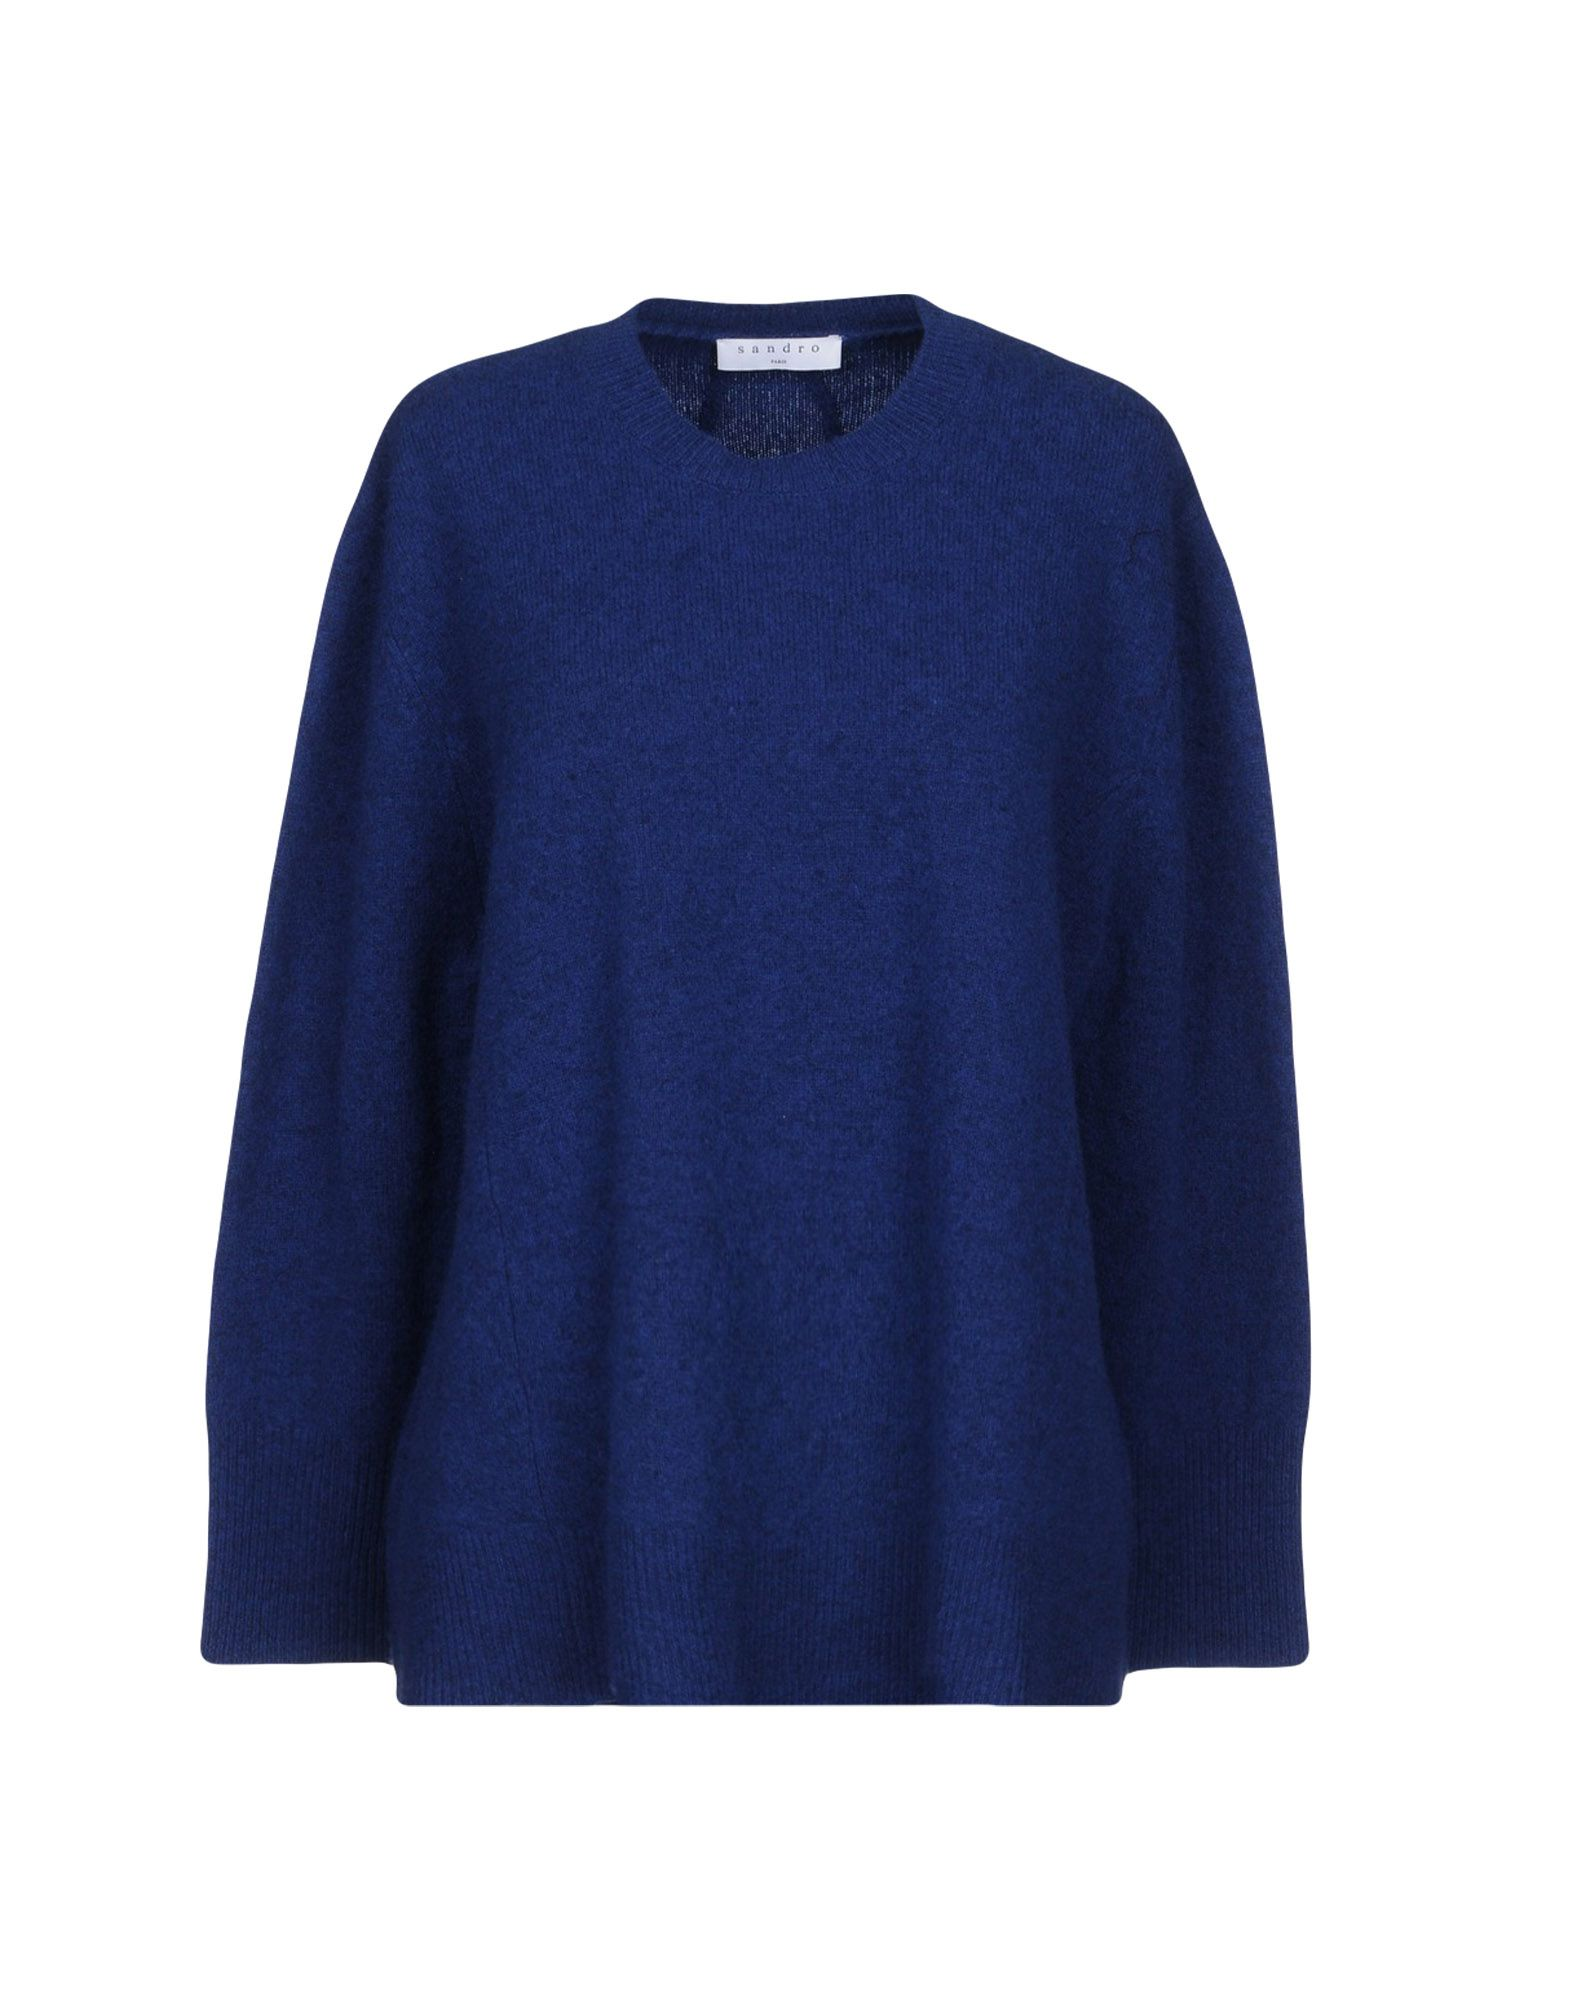 5921af75fe Sandro Sweater - Women Sandro Sweaters online on YOOX Hong Kong ...